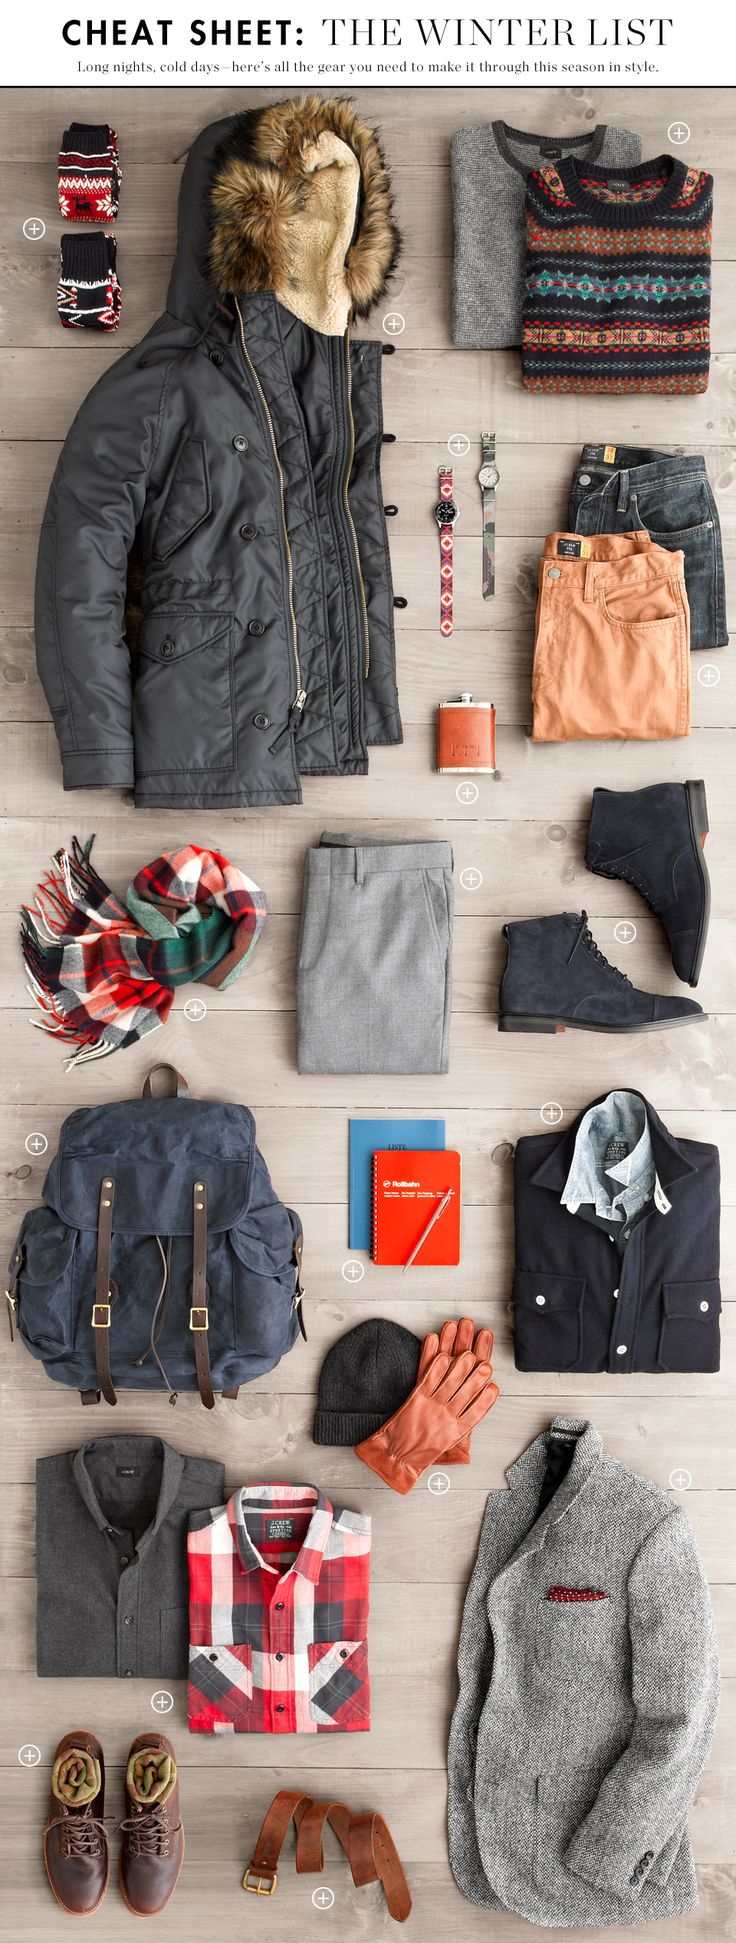 J. Crew Winter Cheat Sheet 2013